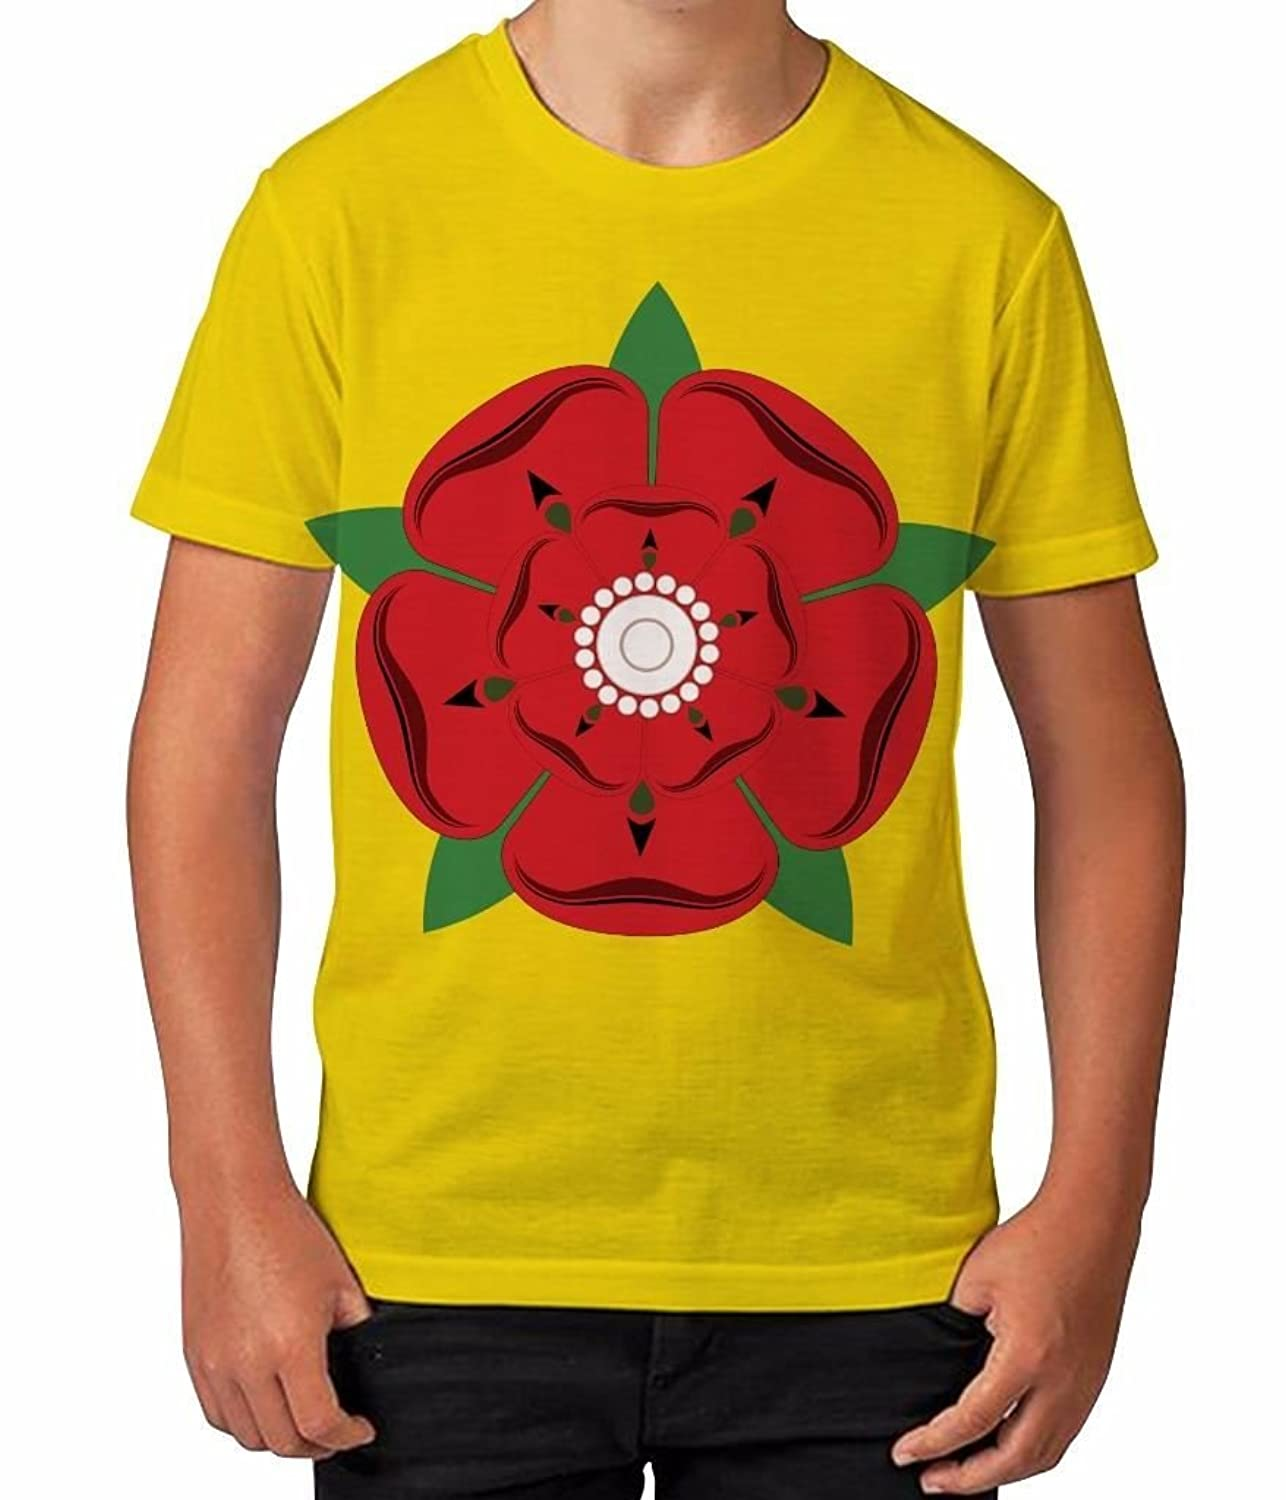 Amazon.com: Kids Graphic T Shirt Boys Top Lancashire Rose Youth Tee Shirt: Clothing